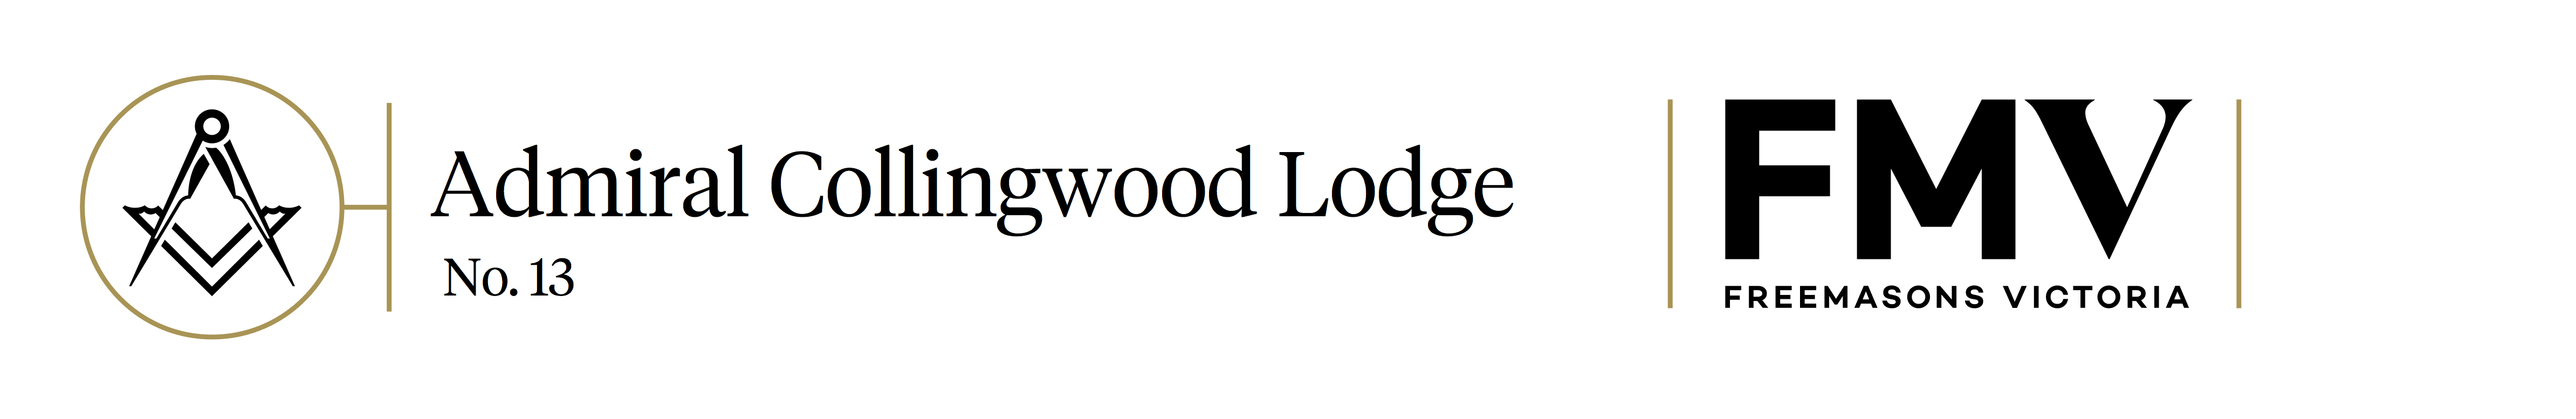 Admiral Collingwood Lodge